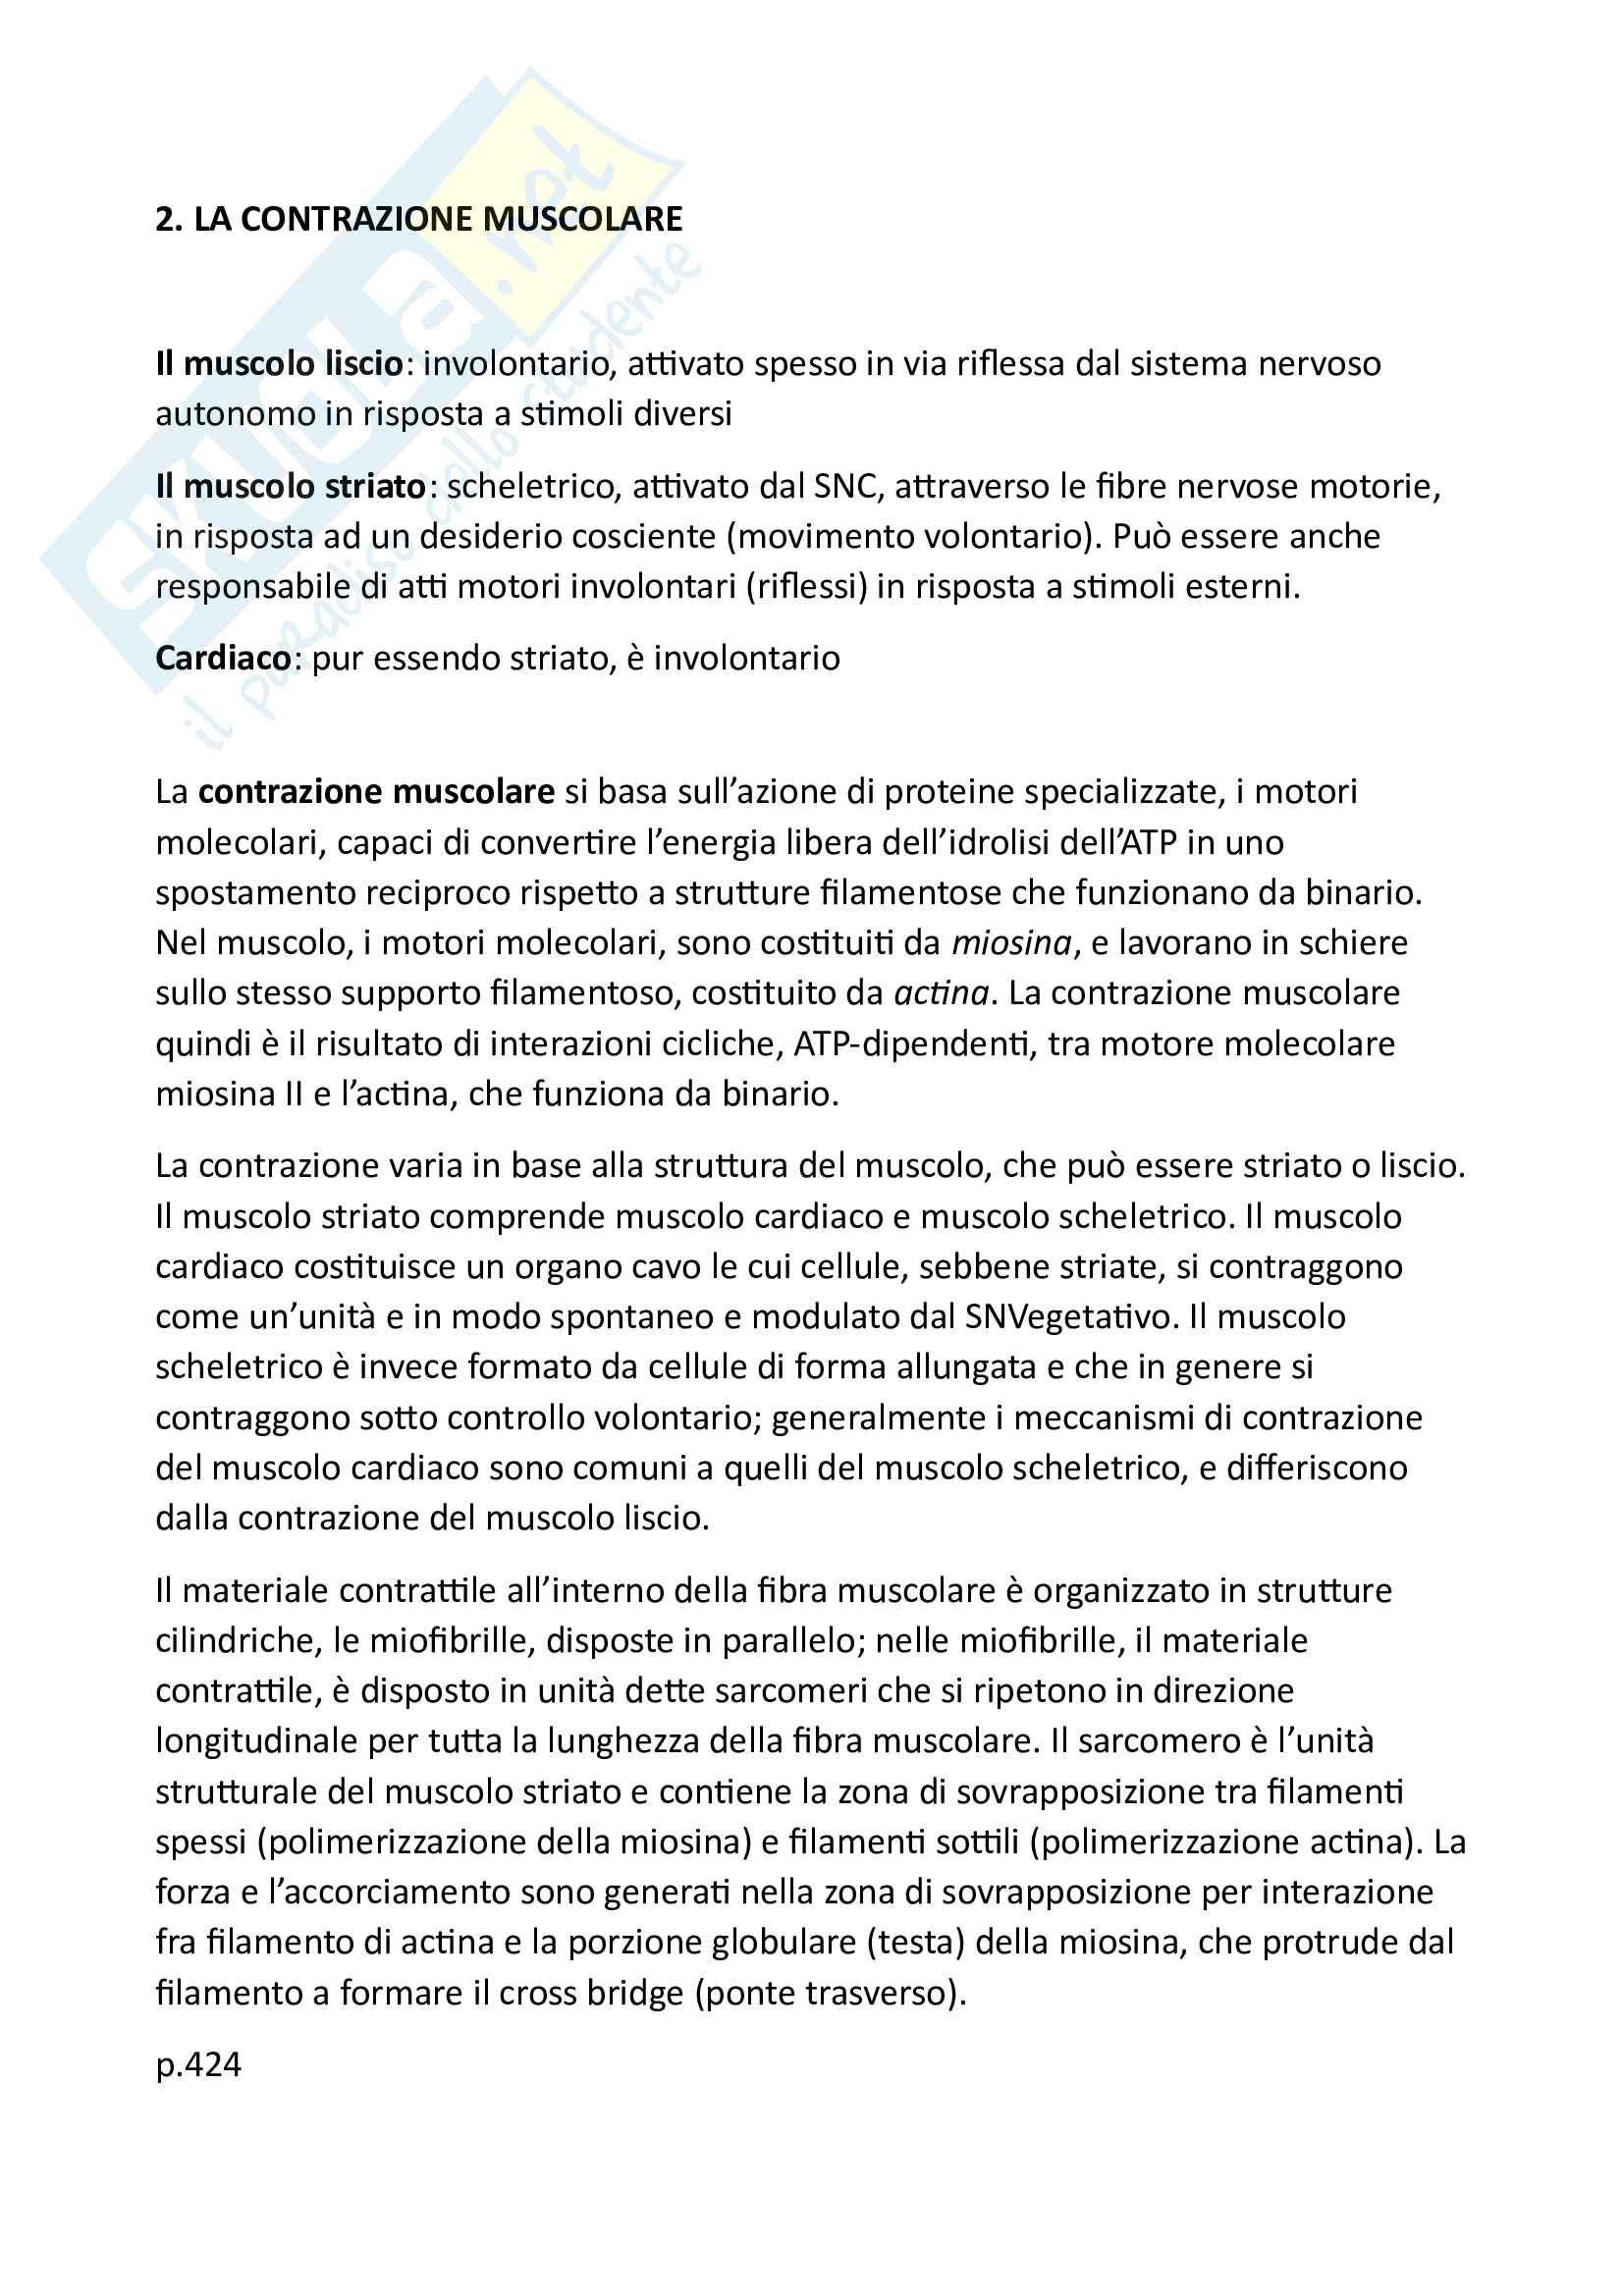 Fisiologia 1 Pag. 6